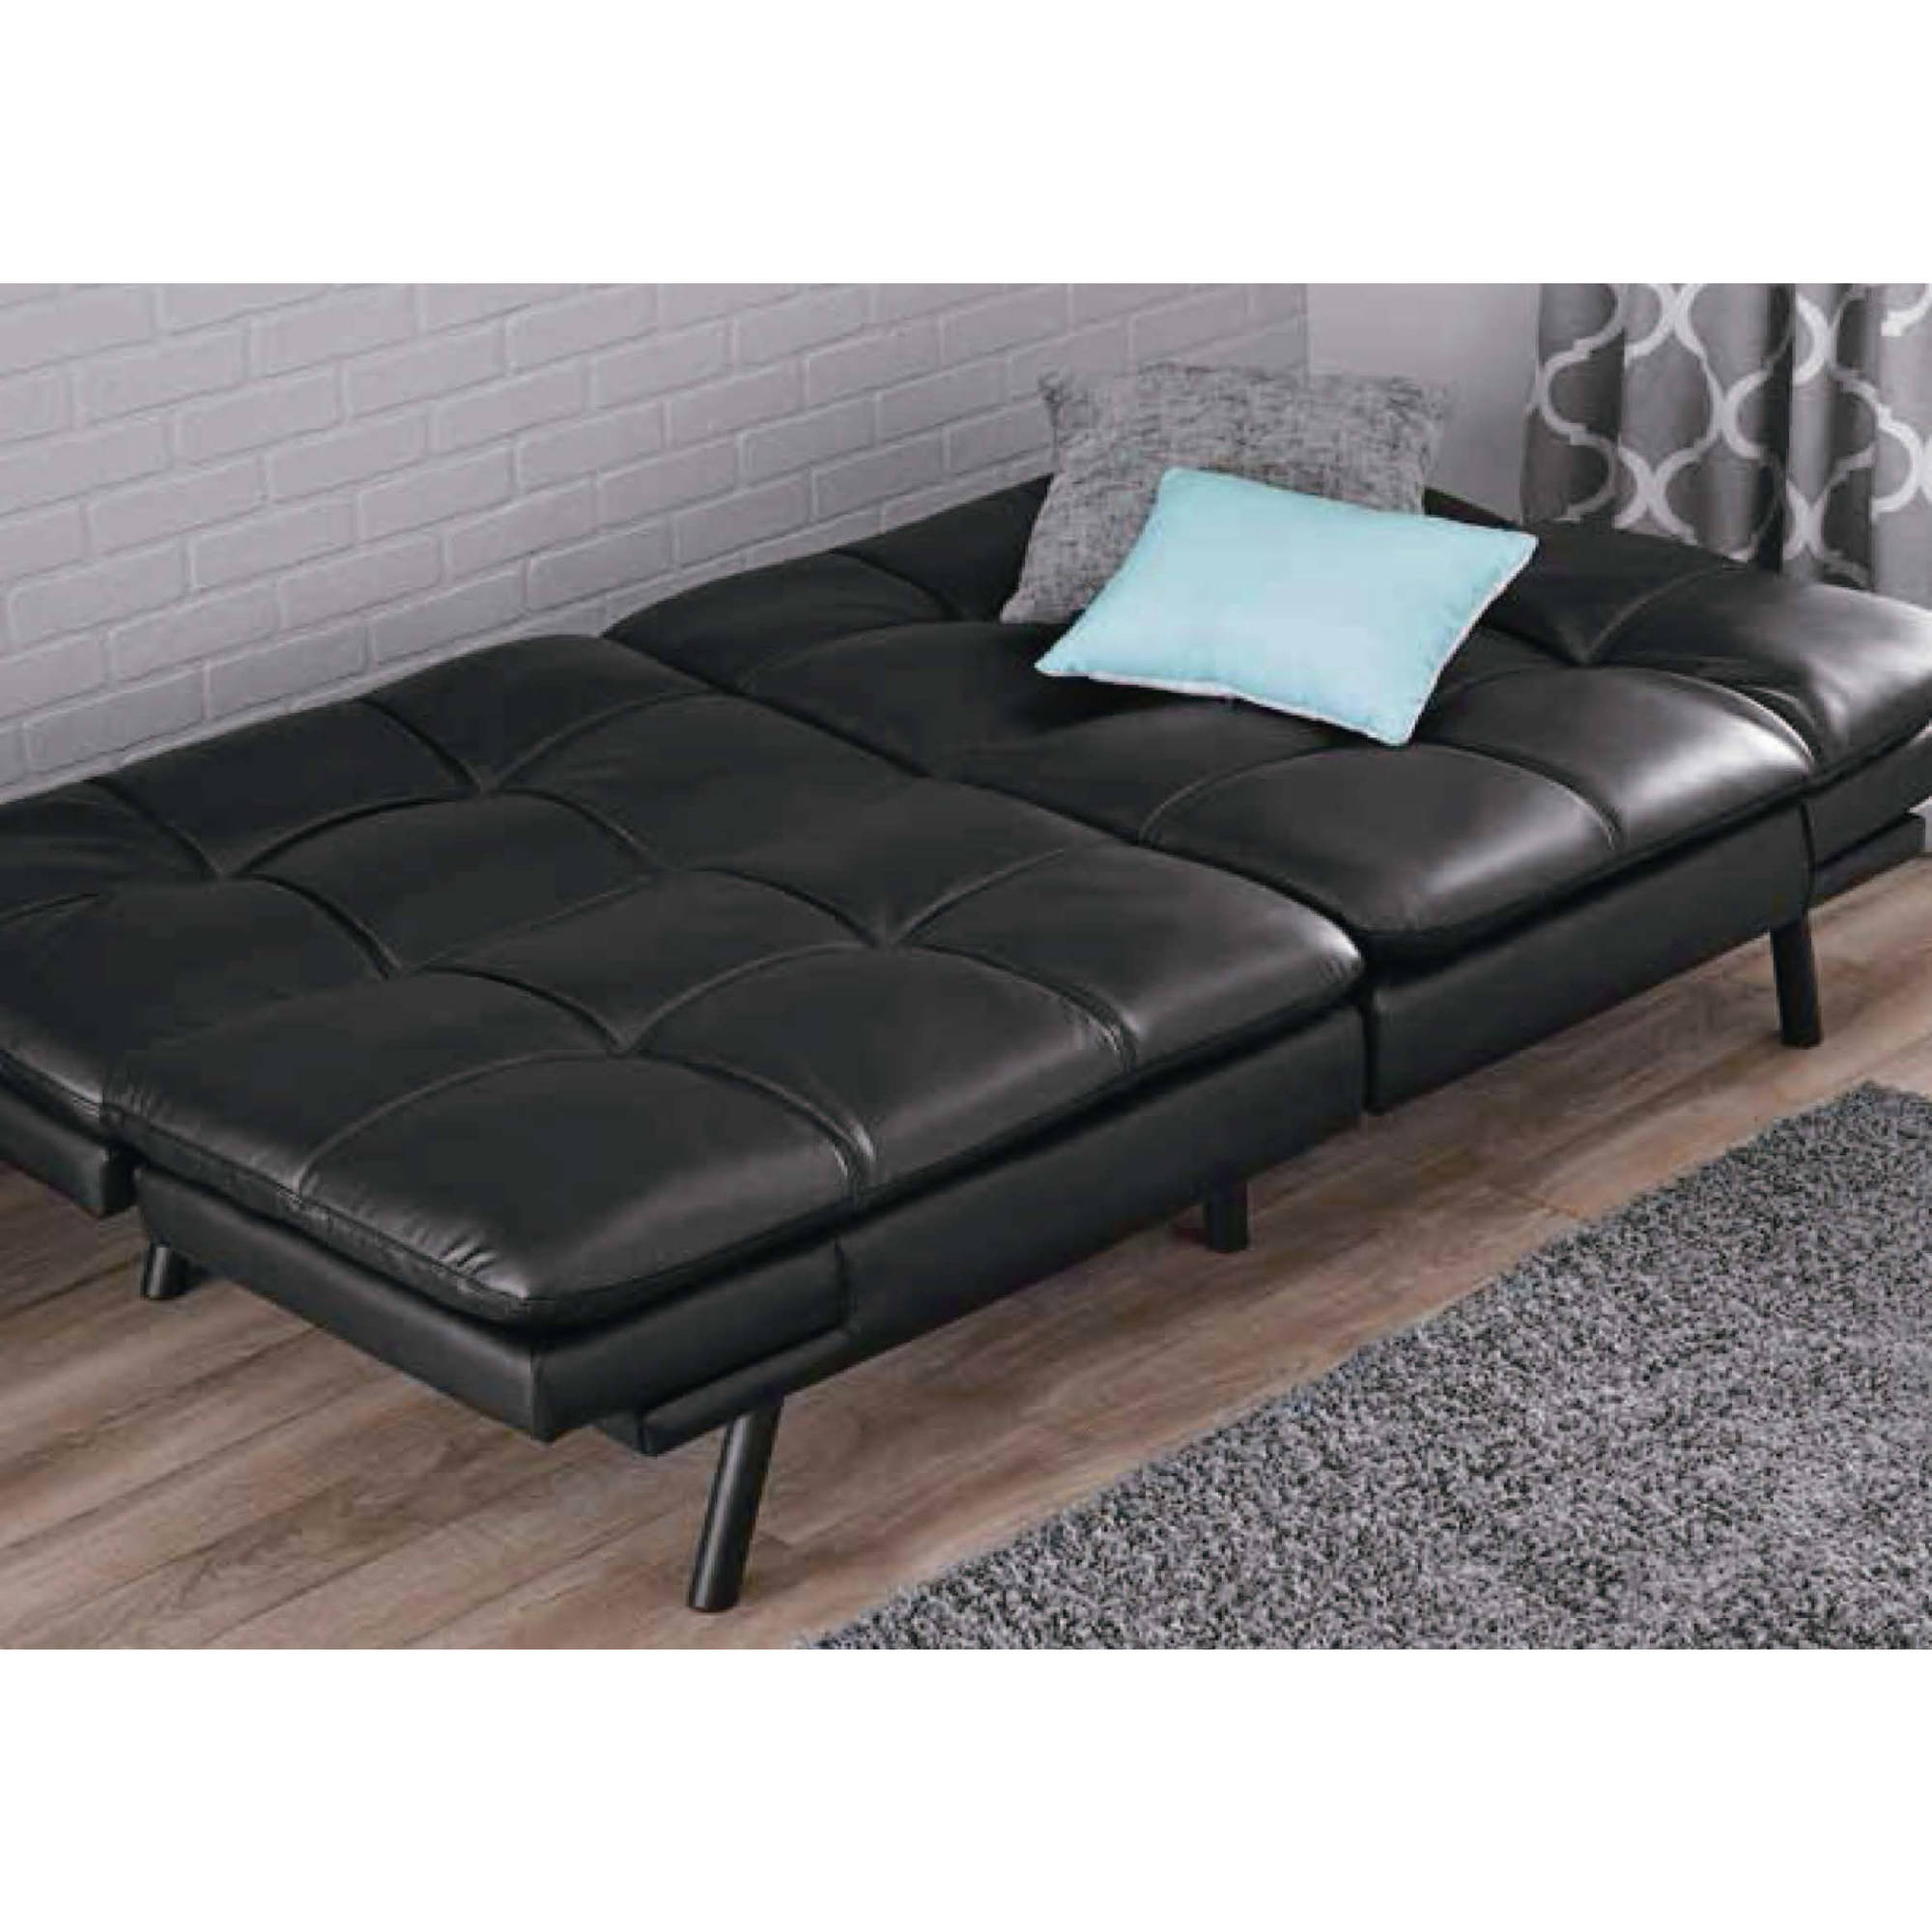 Leather Futon Couch Sleeper Sofa Love seat Convertible Sectional